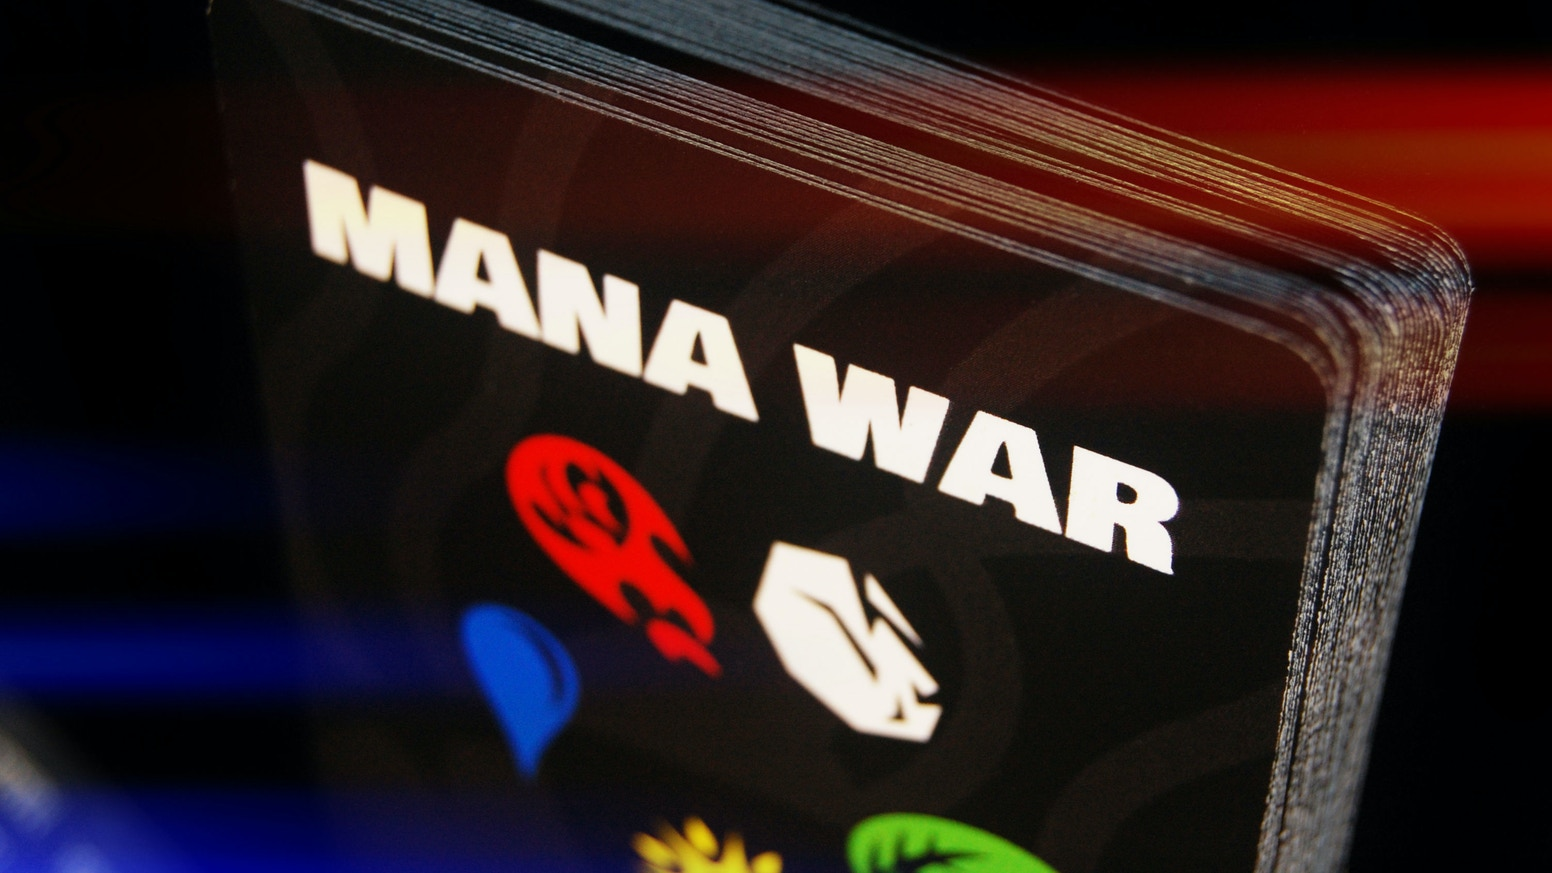 The most versatile deck of cards since the poker deck! Mana War is a simple 5-suit deck of cards with 4 included games for 1-10 players